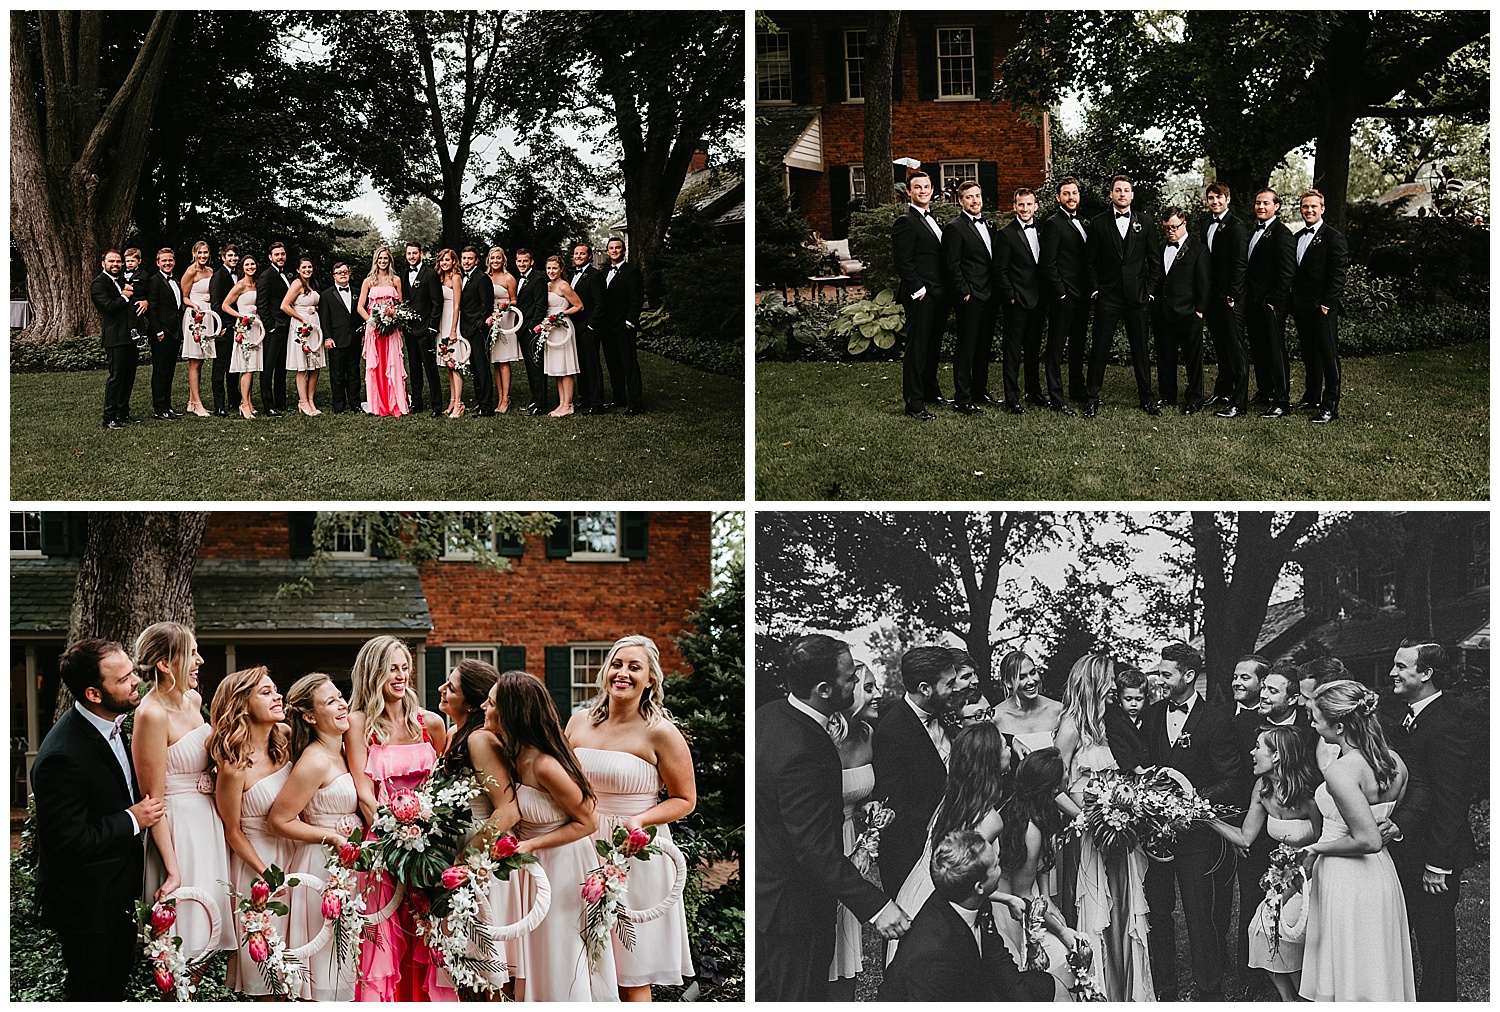 NEPA-Central-PA-Wedding-photographer-at-The-Cypress-House-New-Columbia-PA_0016.jpg